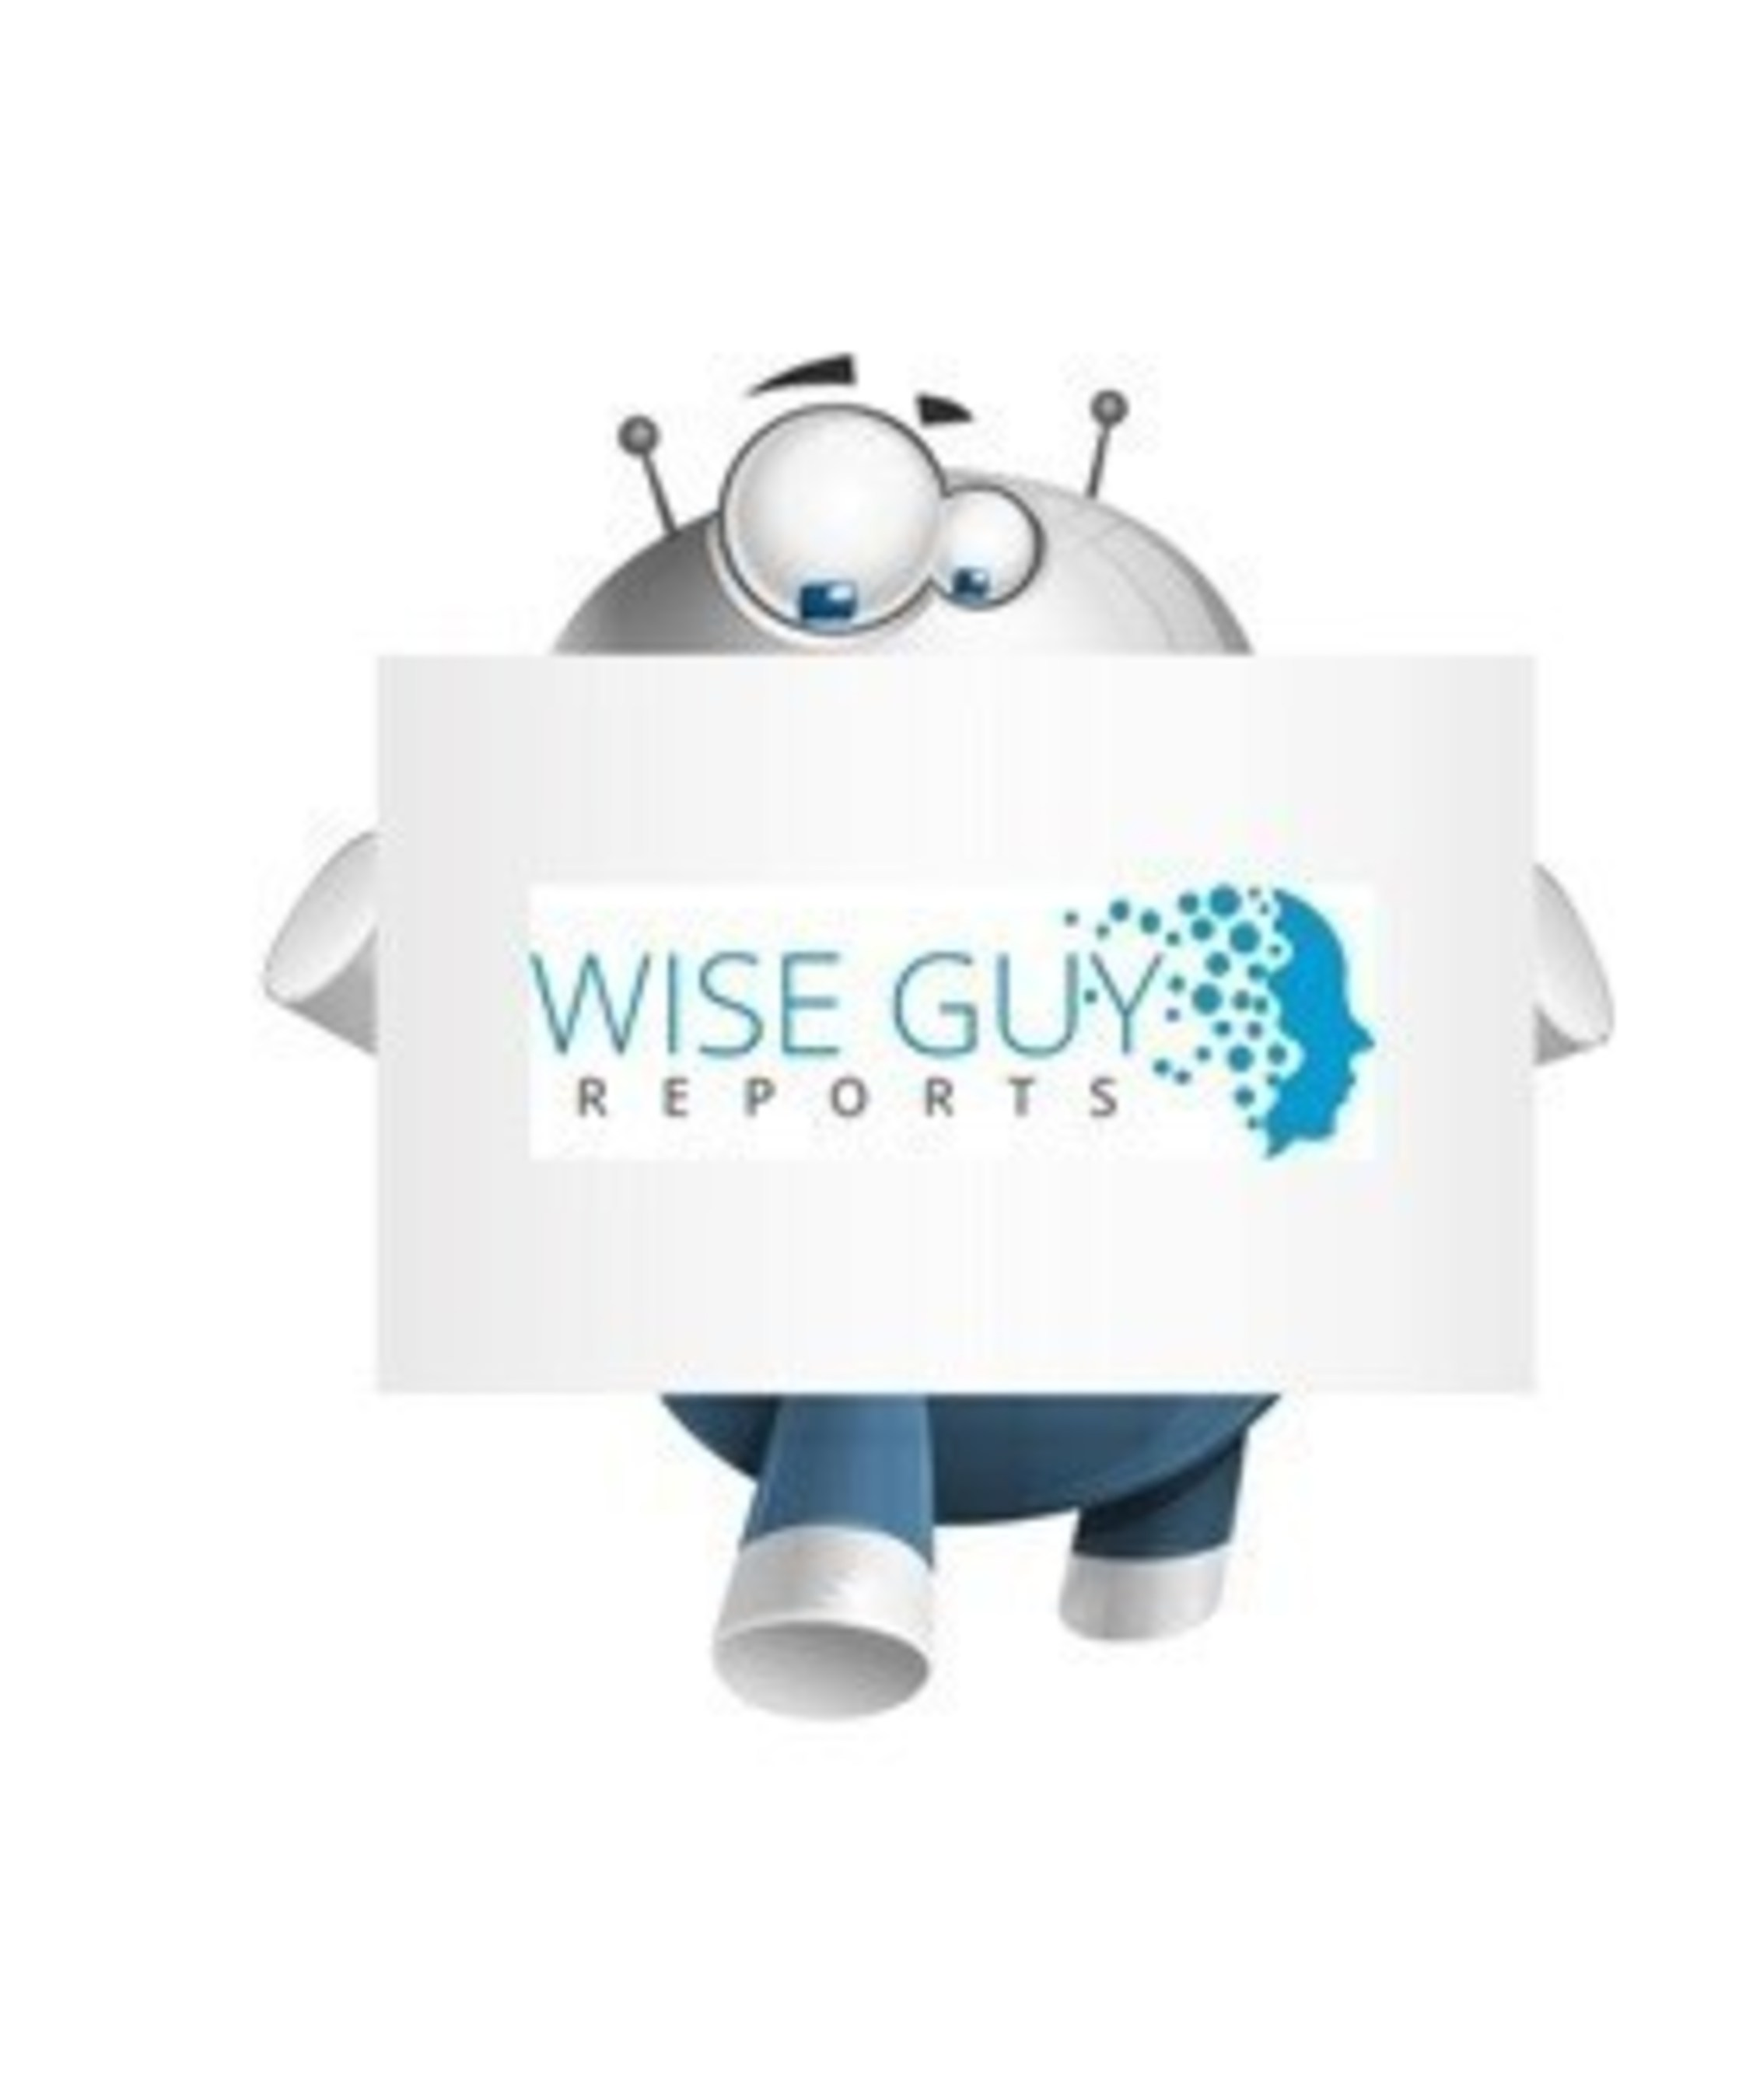 Currency Detector Consumption Market Size, Sales, Type and Application Analysis Report Available at WiseGuyReports.com